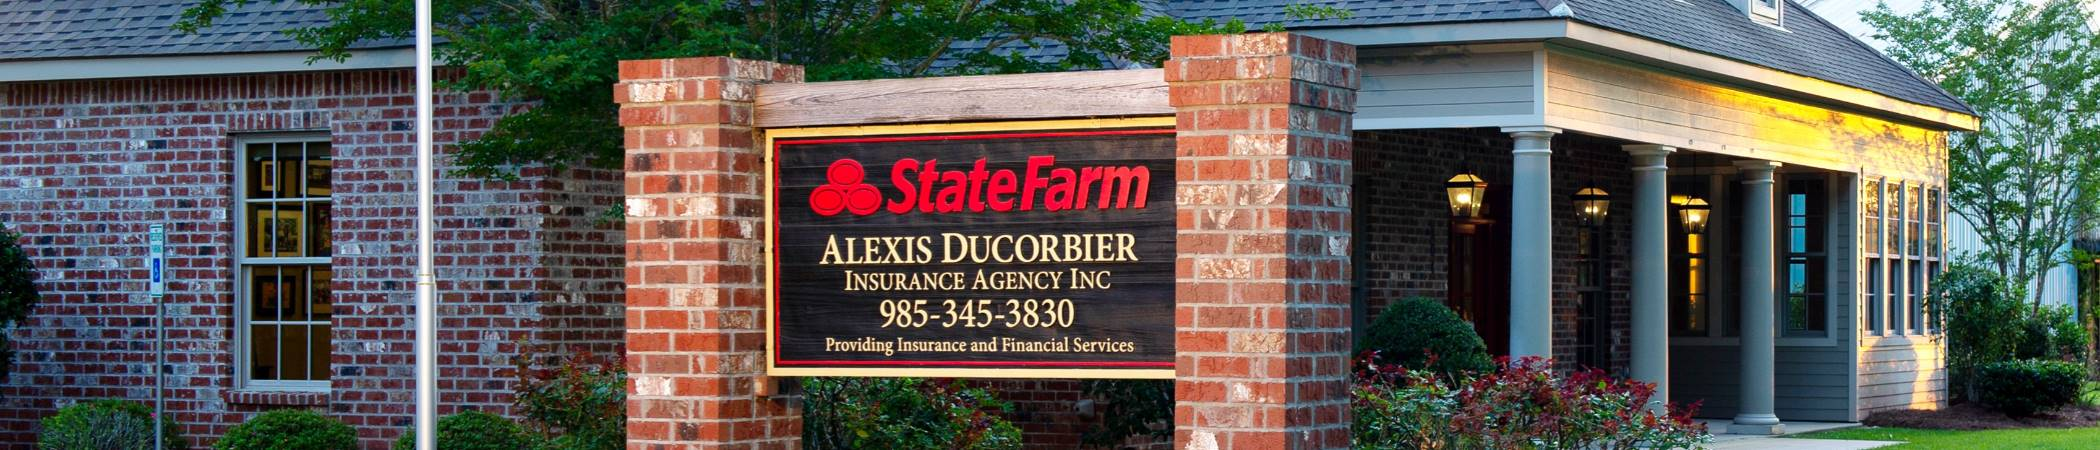 Alexis Ducorbier State Farm Insurance in Hammond, LA | Home, Auto Insurance & more